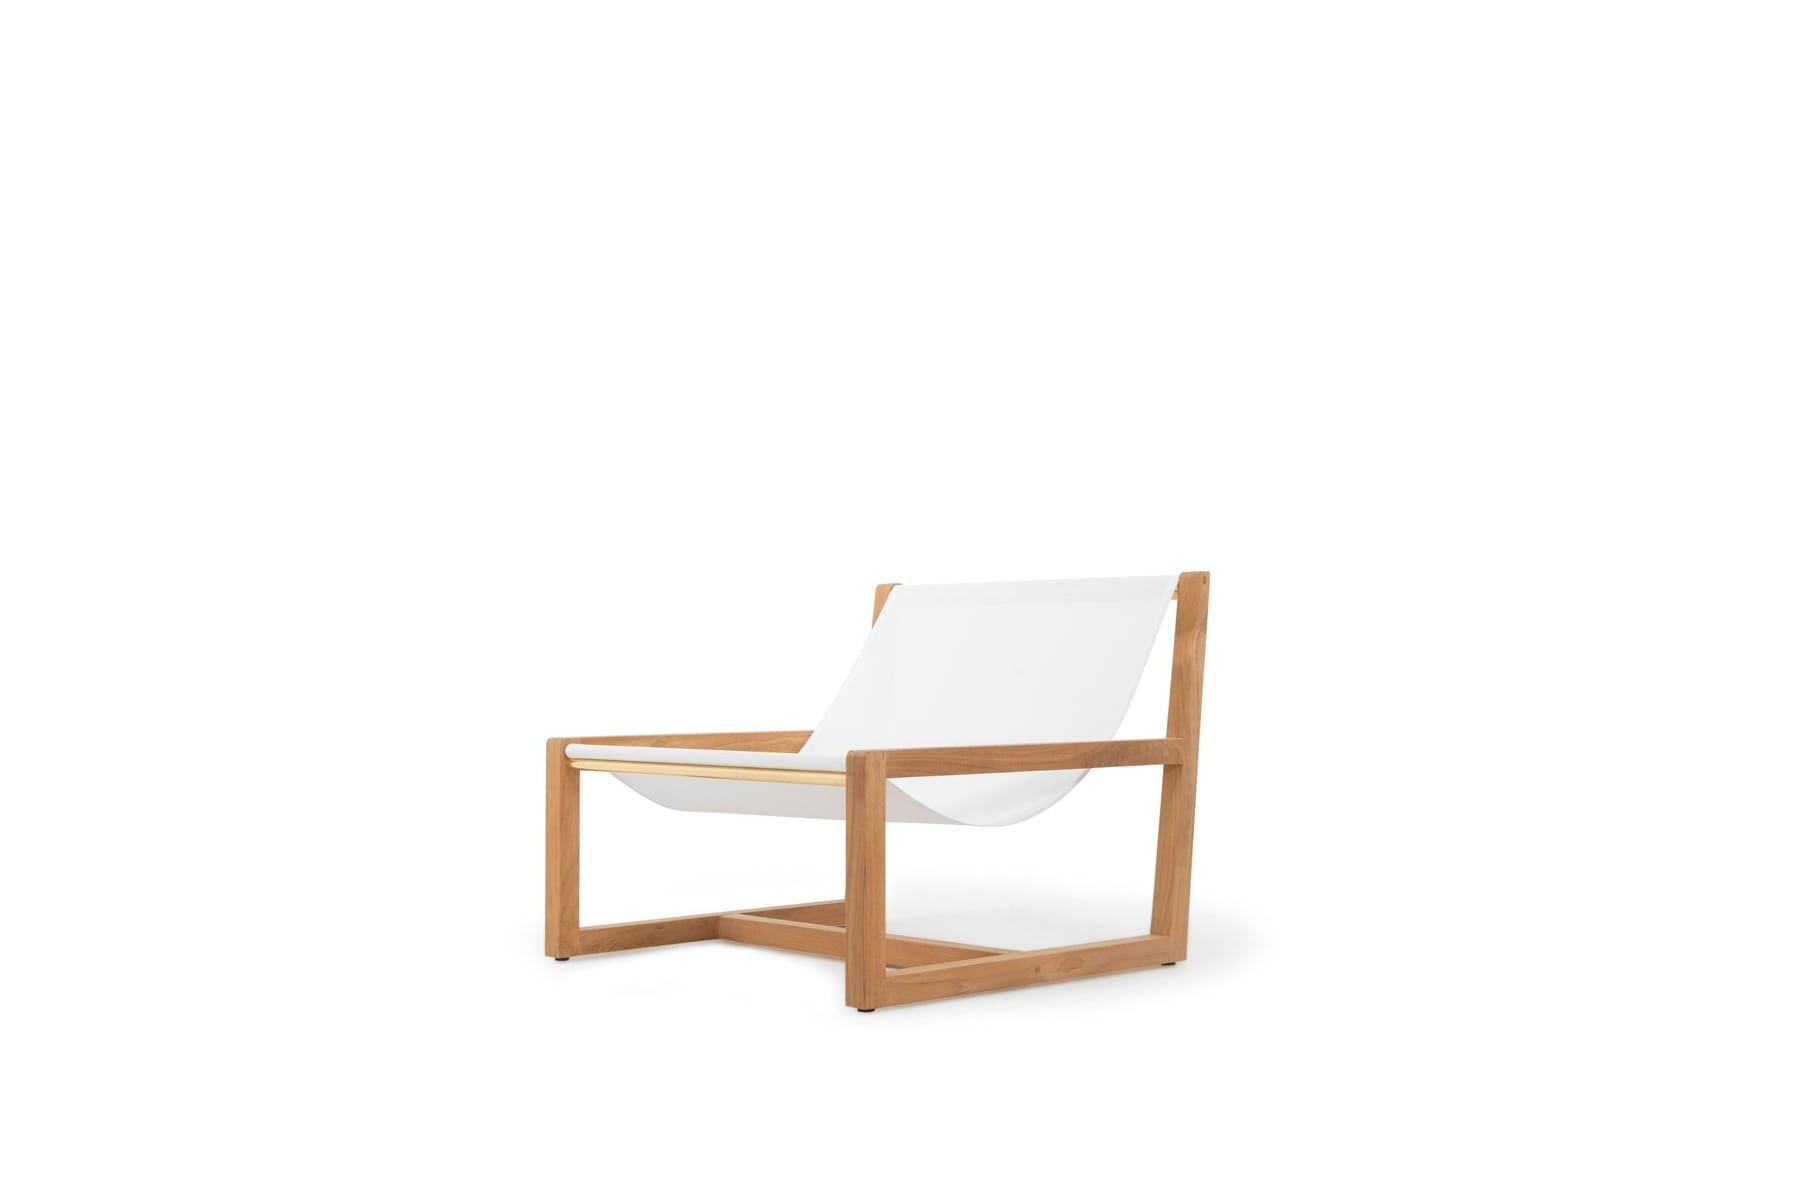 Hollywood Wood Chair With Regard To Favorite Outdoor Wood Sling Chairs (View 5 of 25)